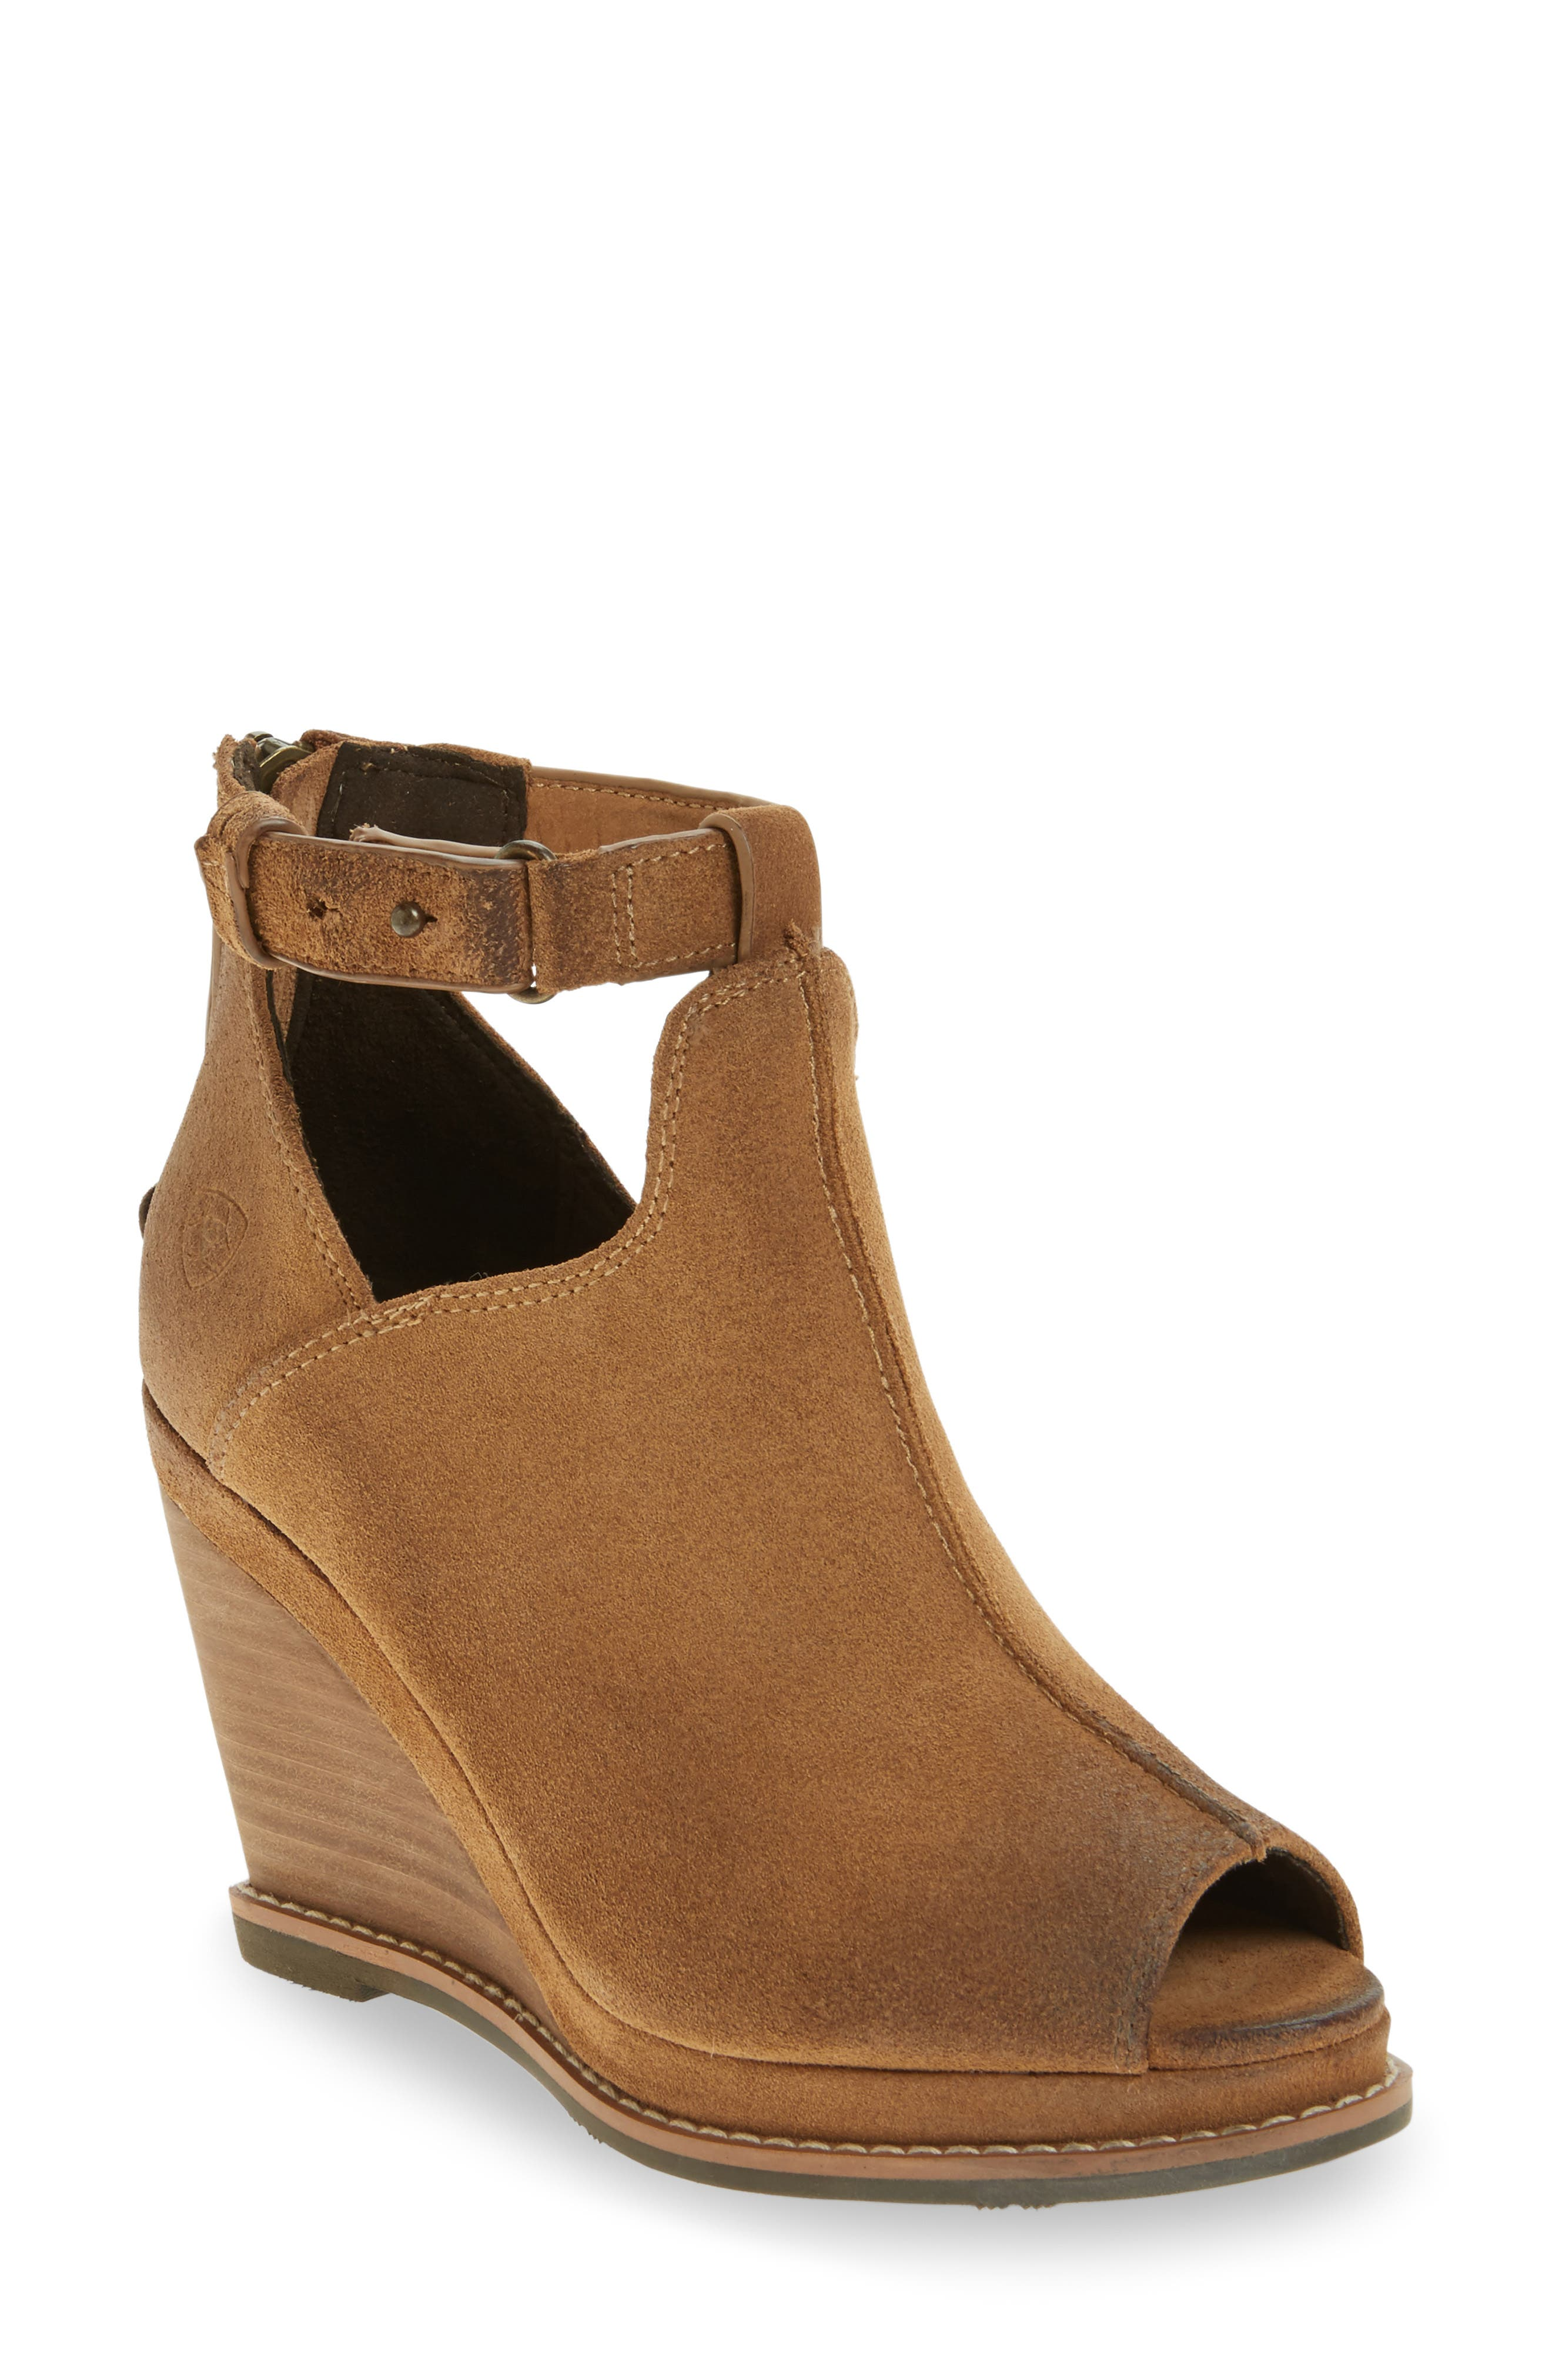 Backstage Wedge Bootie,                             Main thumbnail 2, color,